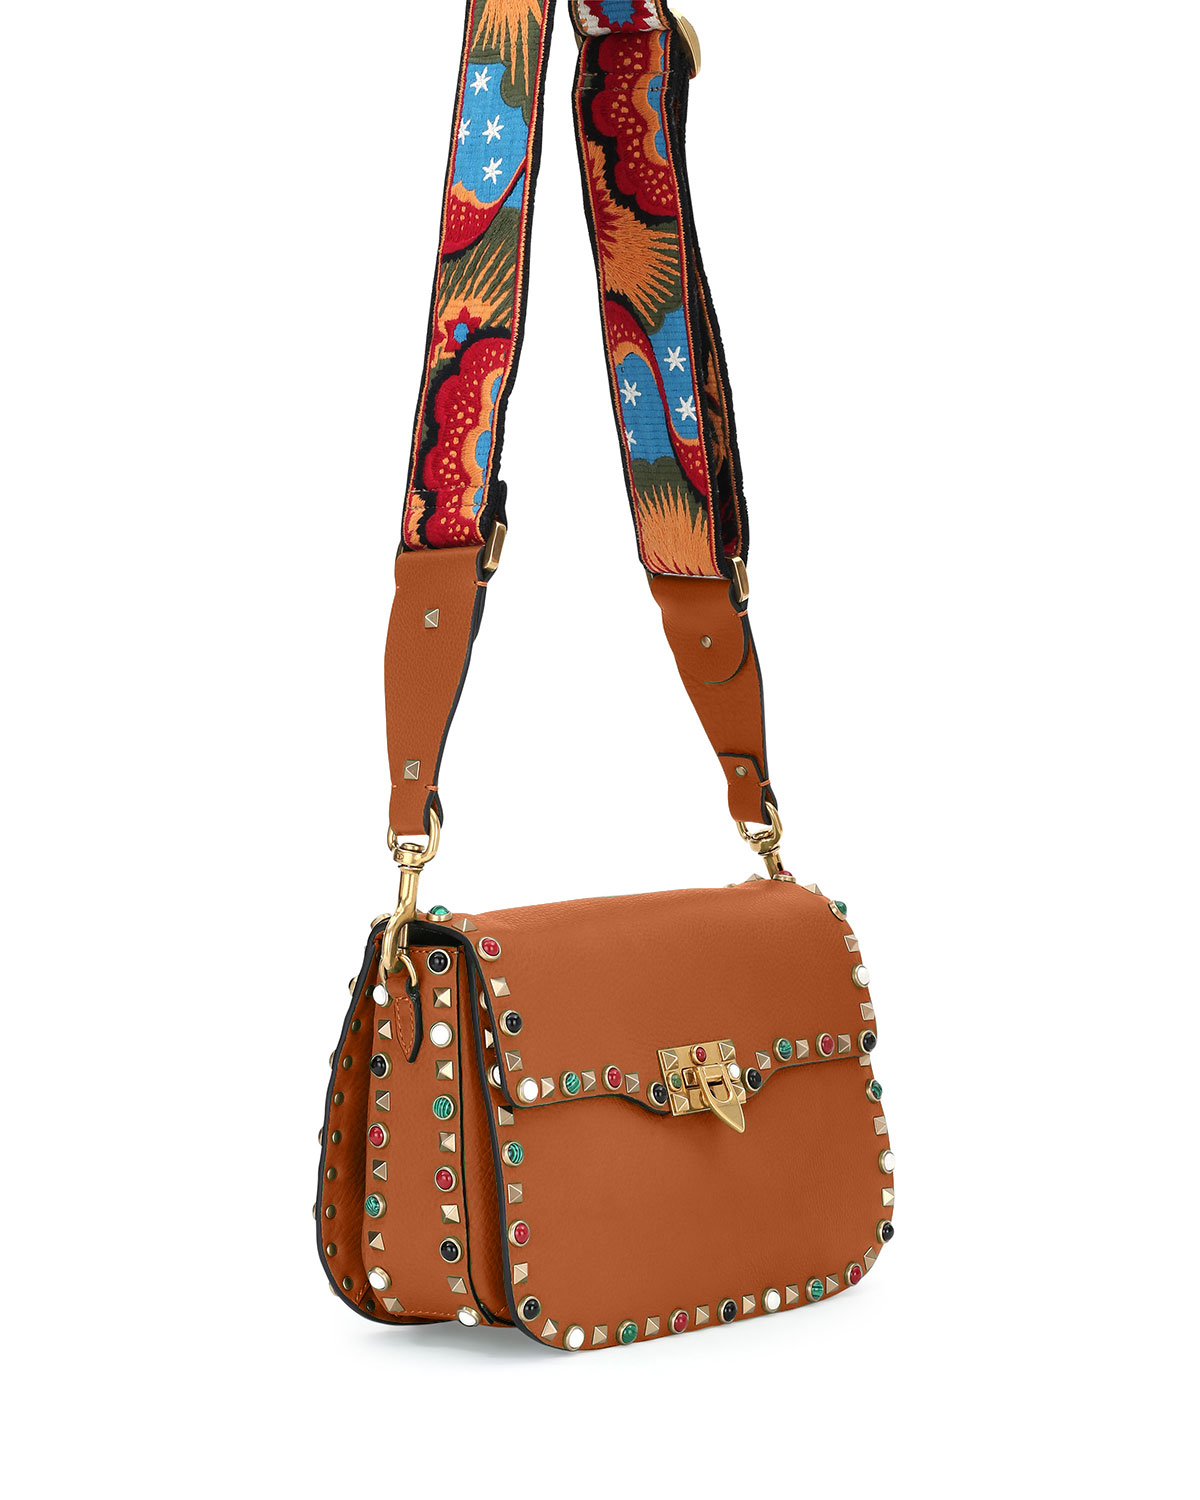 Valentino Garavani Rockstud Rolling Medium Enchanted Guitar Strap Shoulder Bag Tan Neiman Marcus